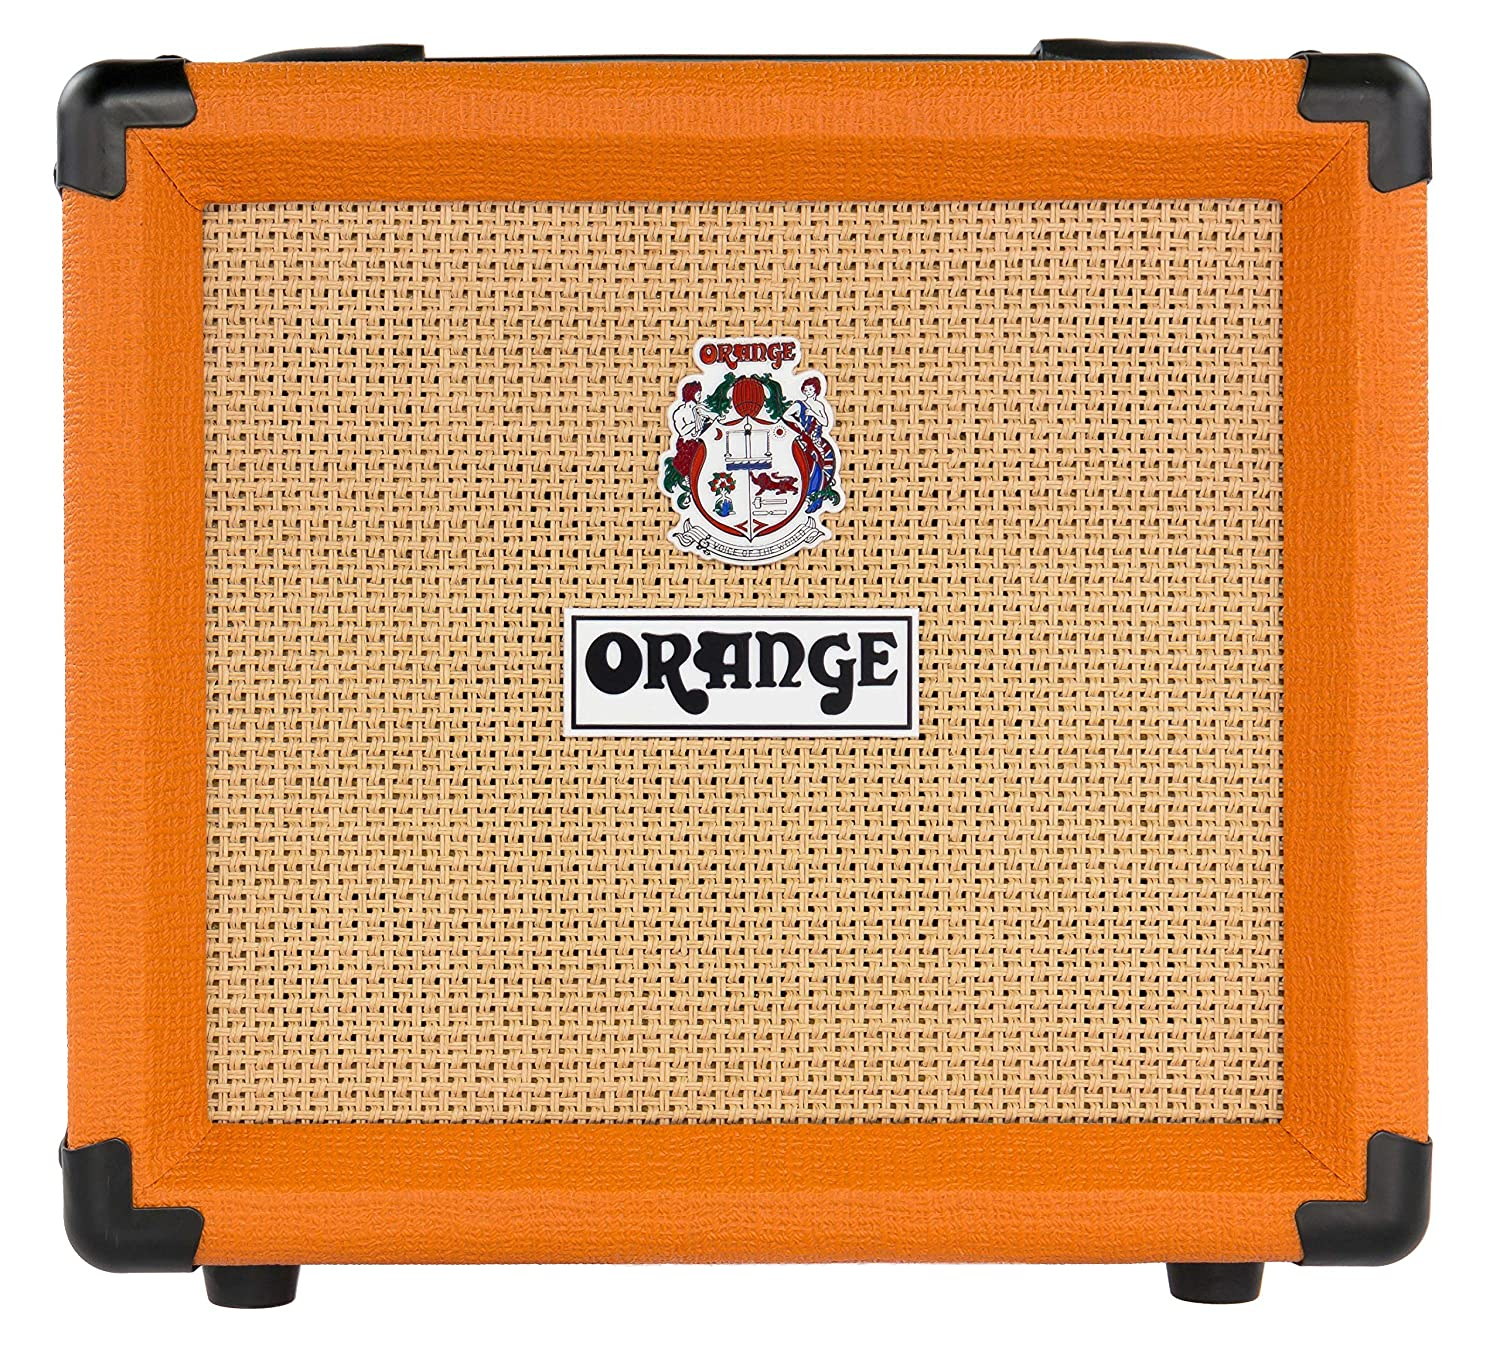 2. Orange Amps Electric Guitar Power Amplifier